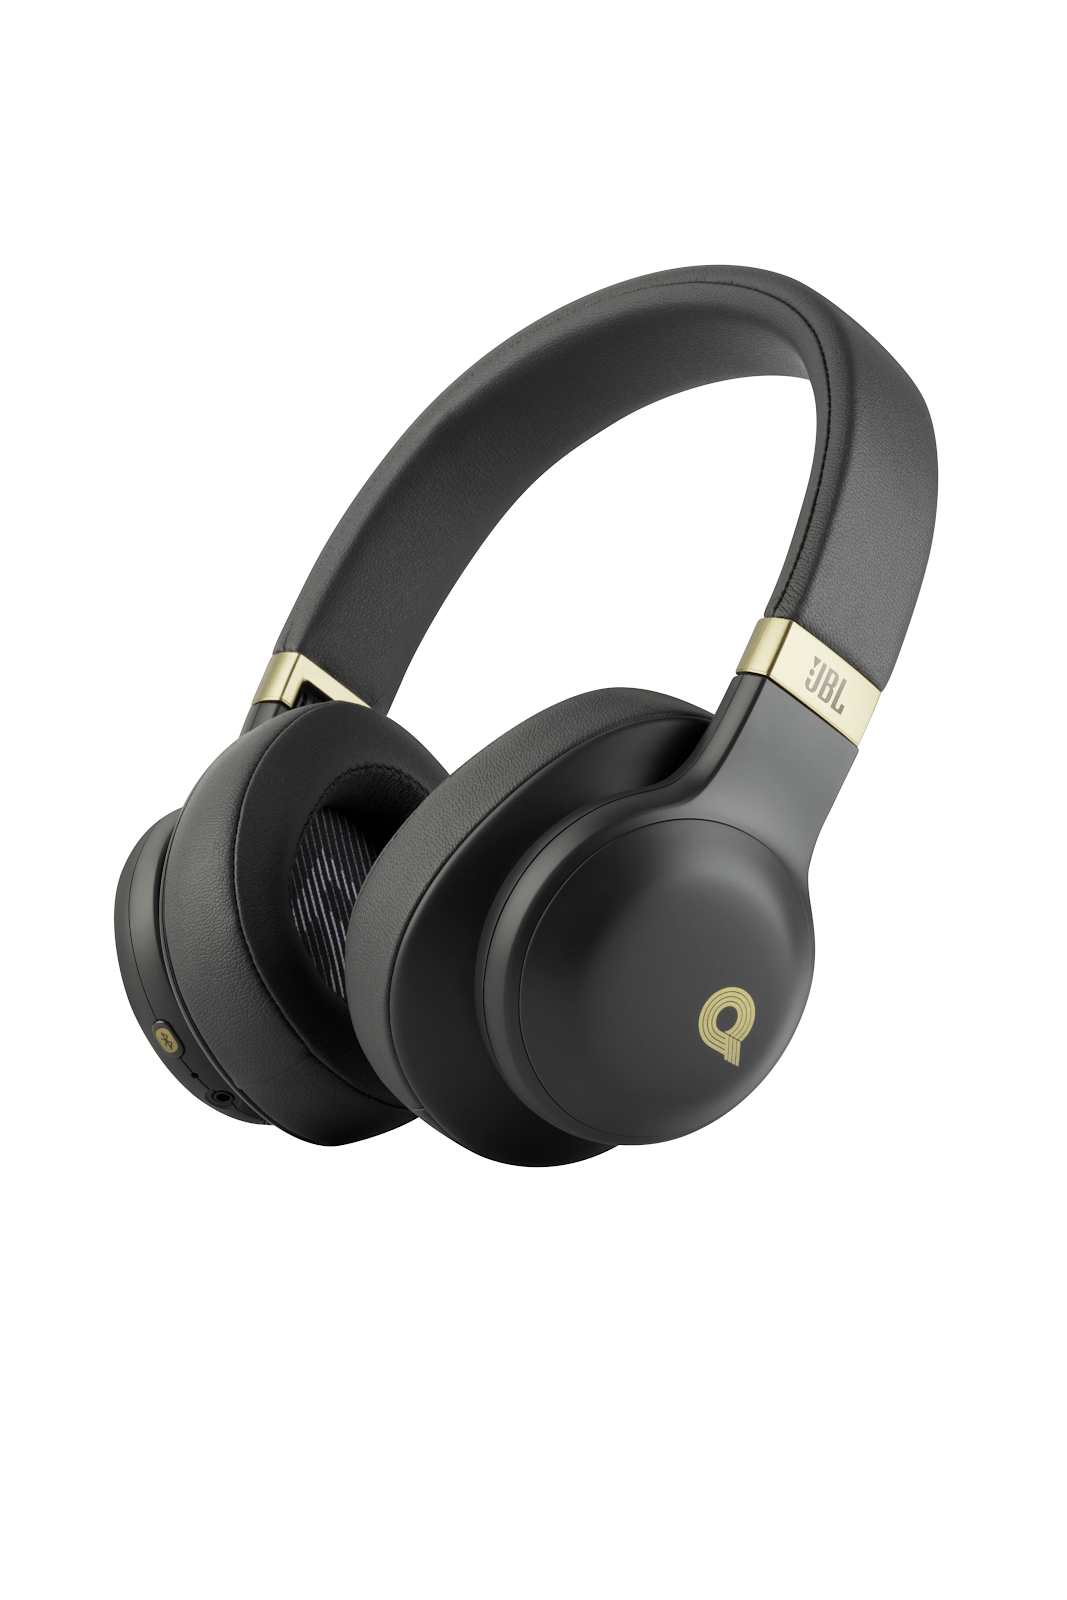 JBL E55BT Quincy Edition Wireless Headphones